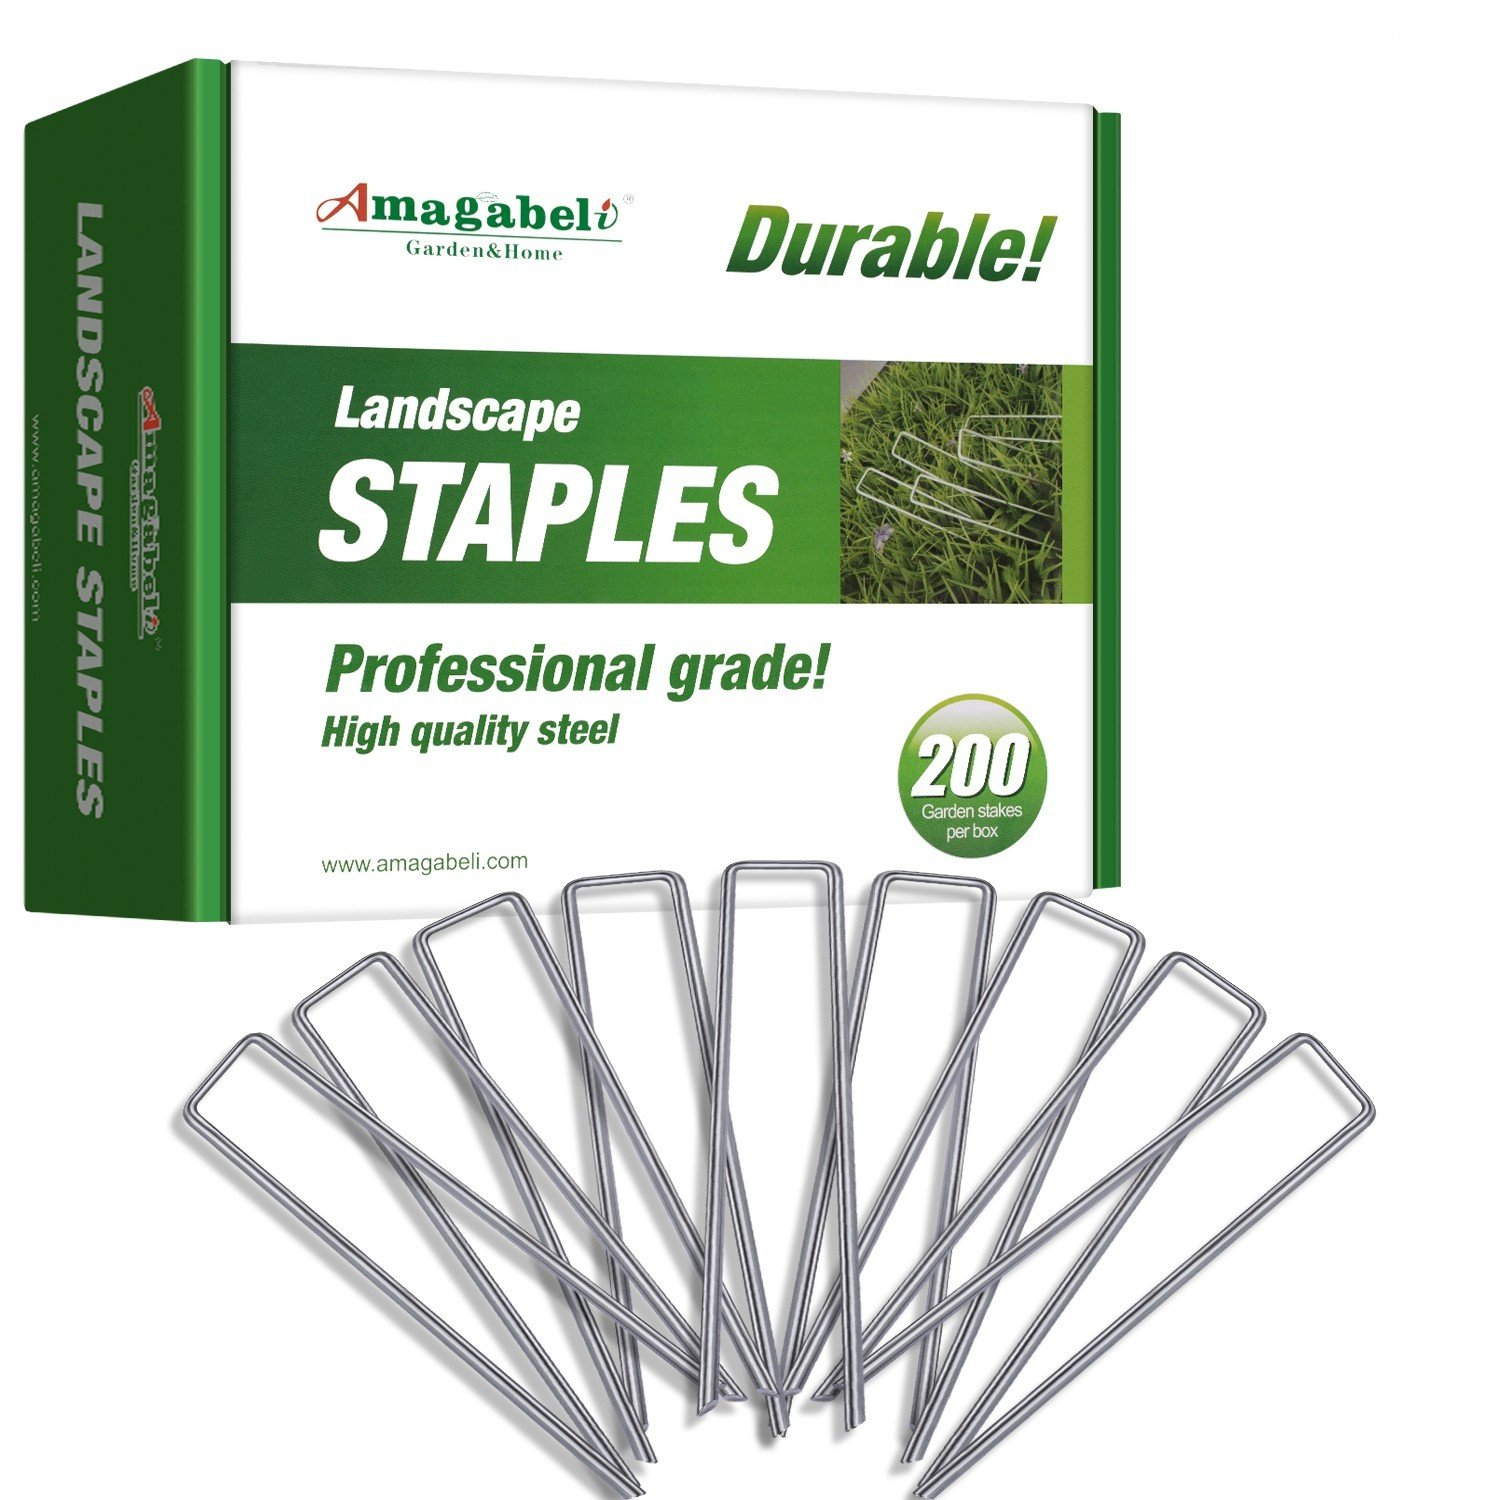 200 6 Inch Garden Stakes Galvanized Landscape Staples 11 Gauge Sod Pins Rust Proof Fence Stakes for Anchoring Landscape Weed Barrier Fabric Ground Cover Lawn Dripper Irrigation Tubing Soaker Hose